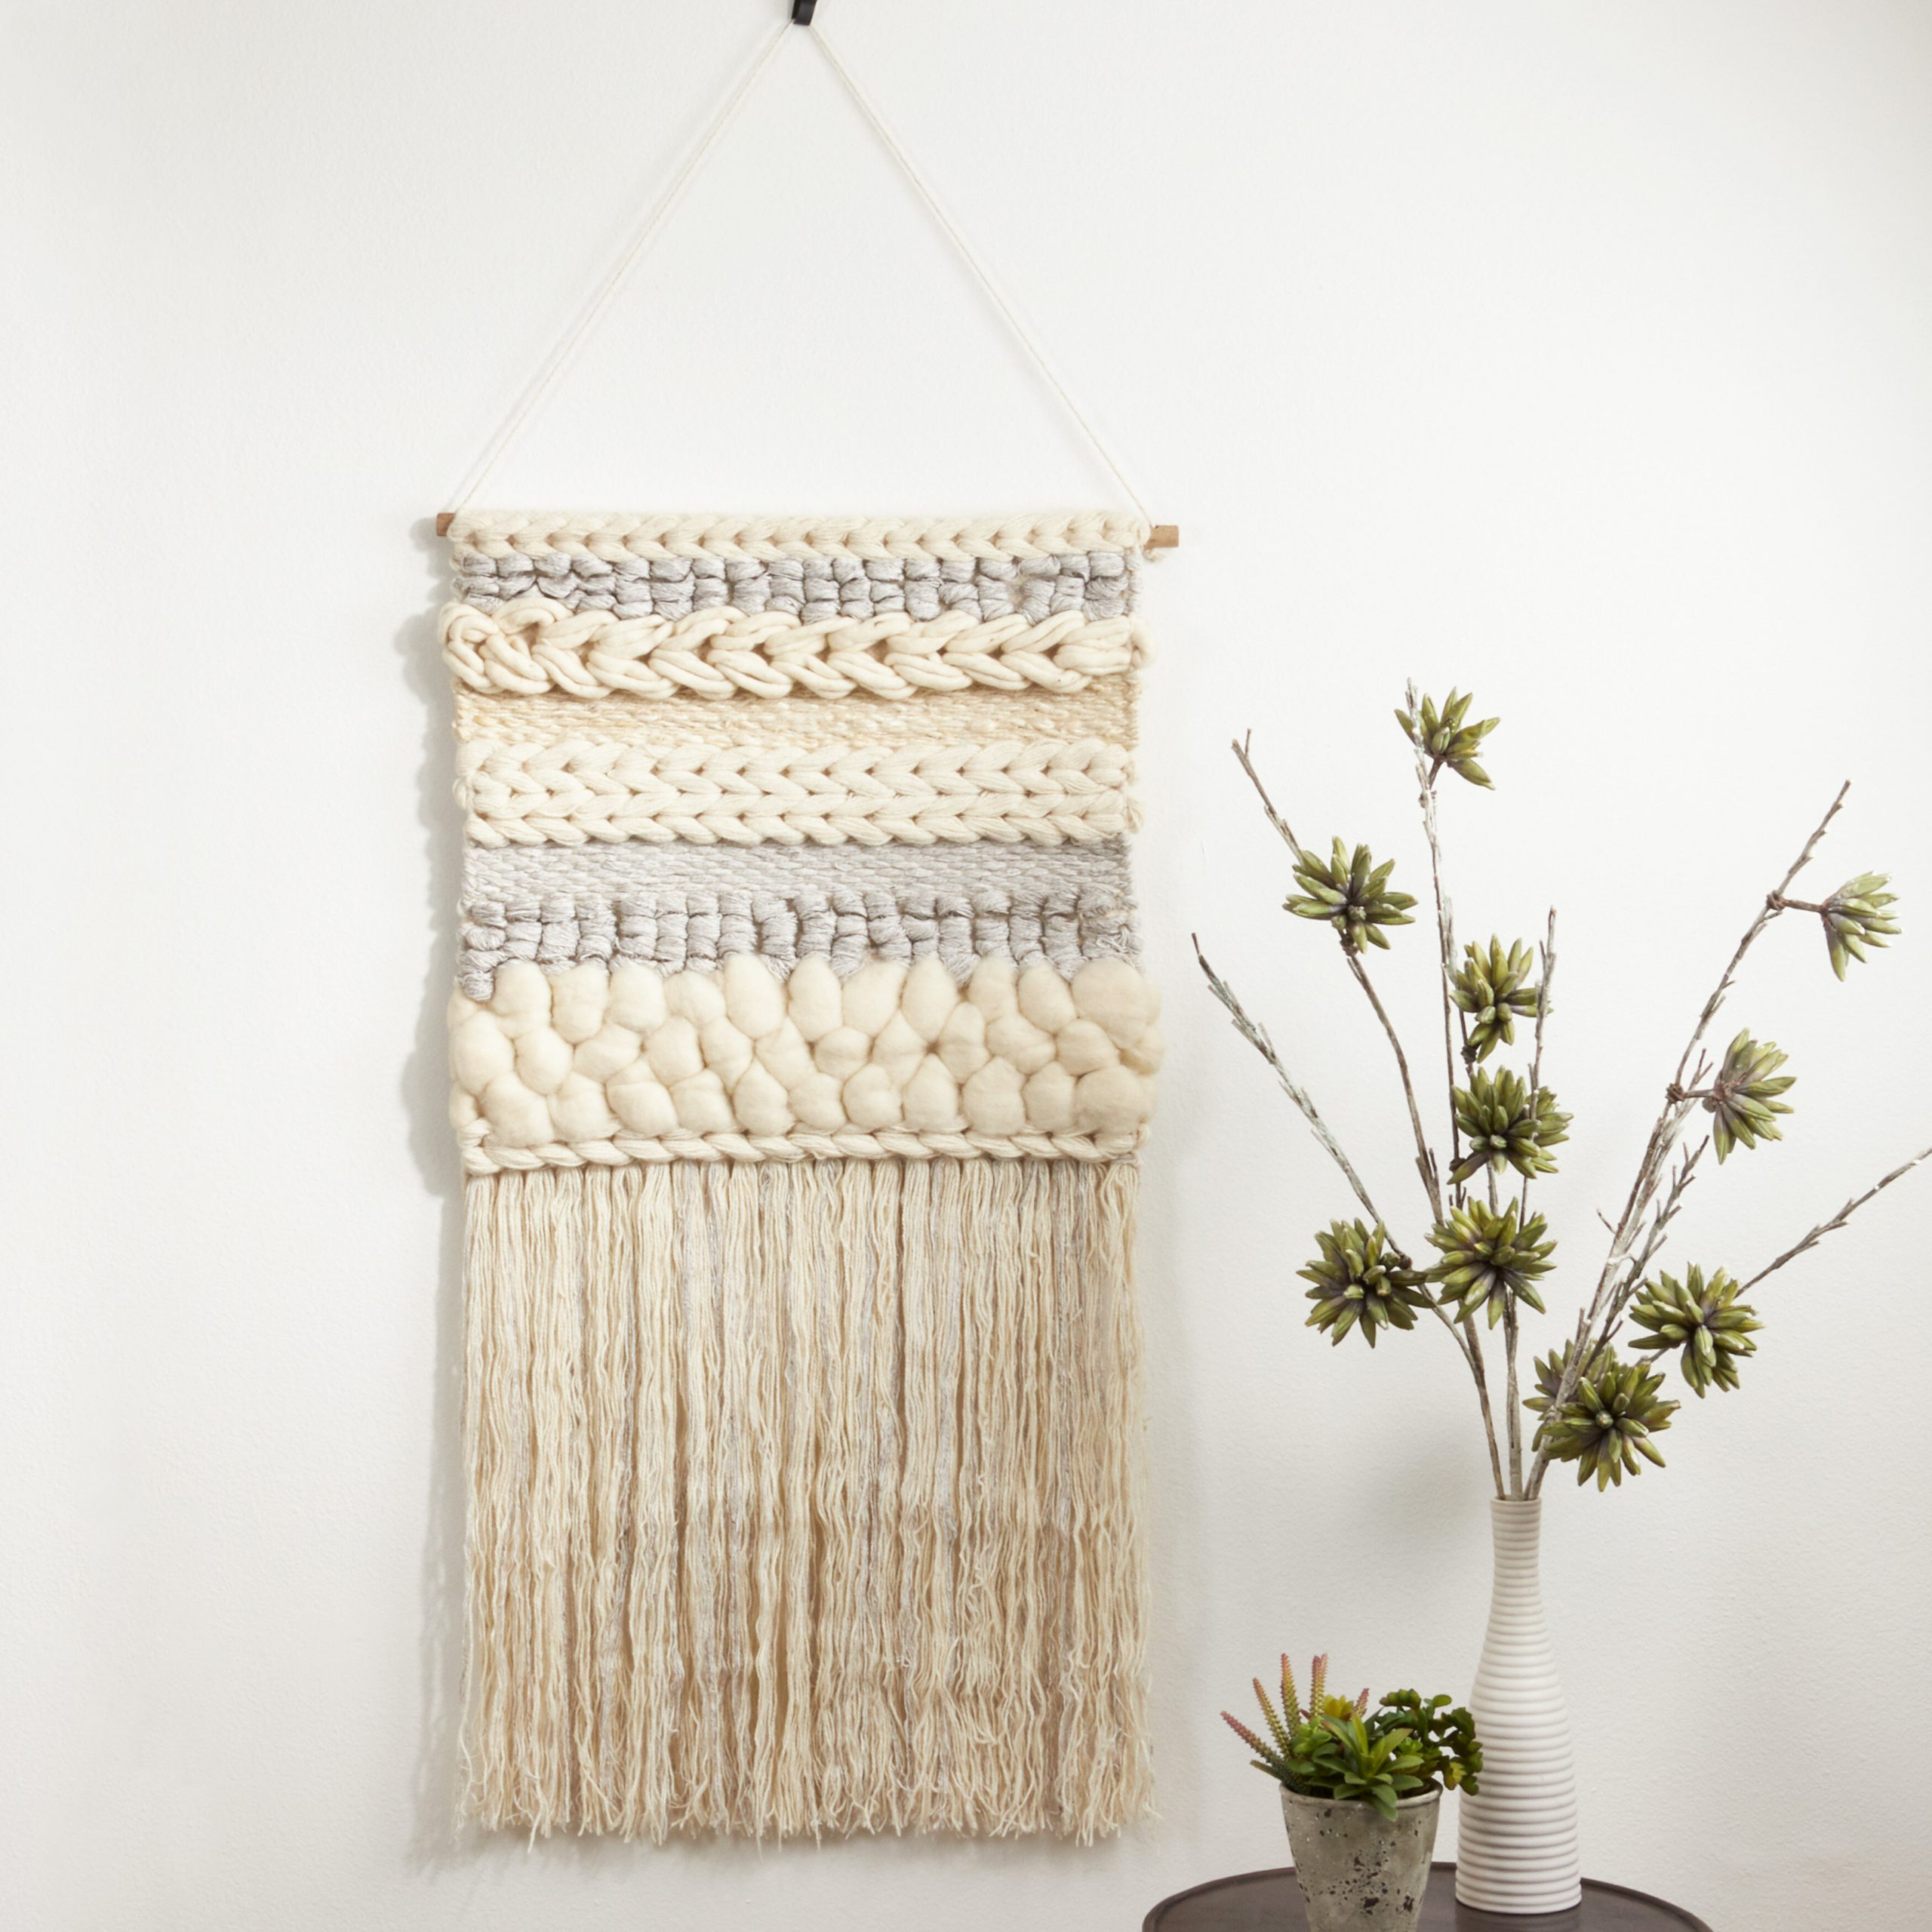 Blended Fabric Fringed Braided Design With Rod Included For 2020 Blended Fabric Wall Hangings With Rod Included (View 10 of 20)